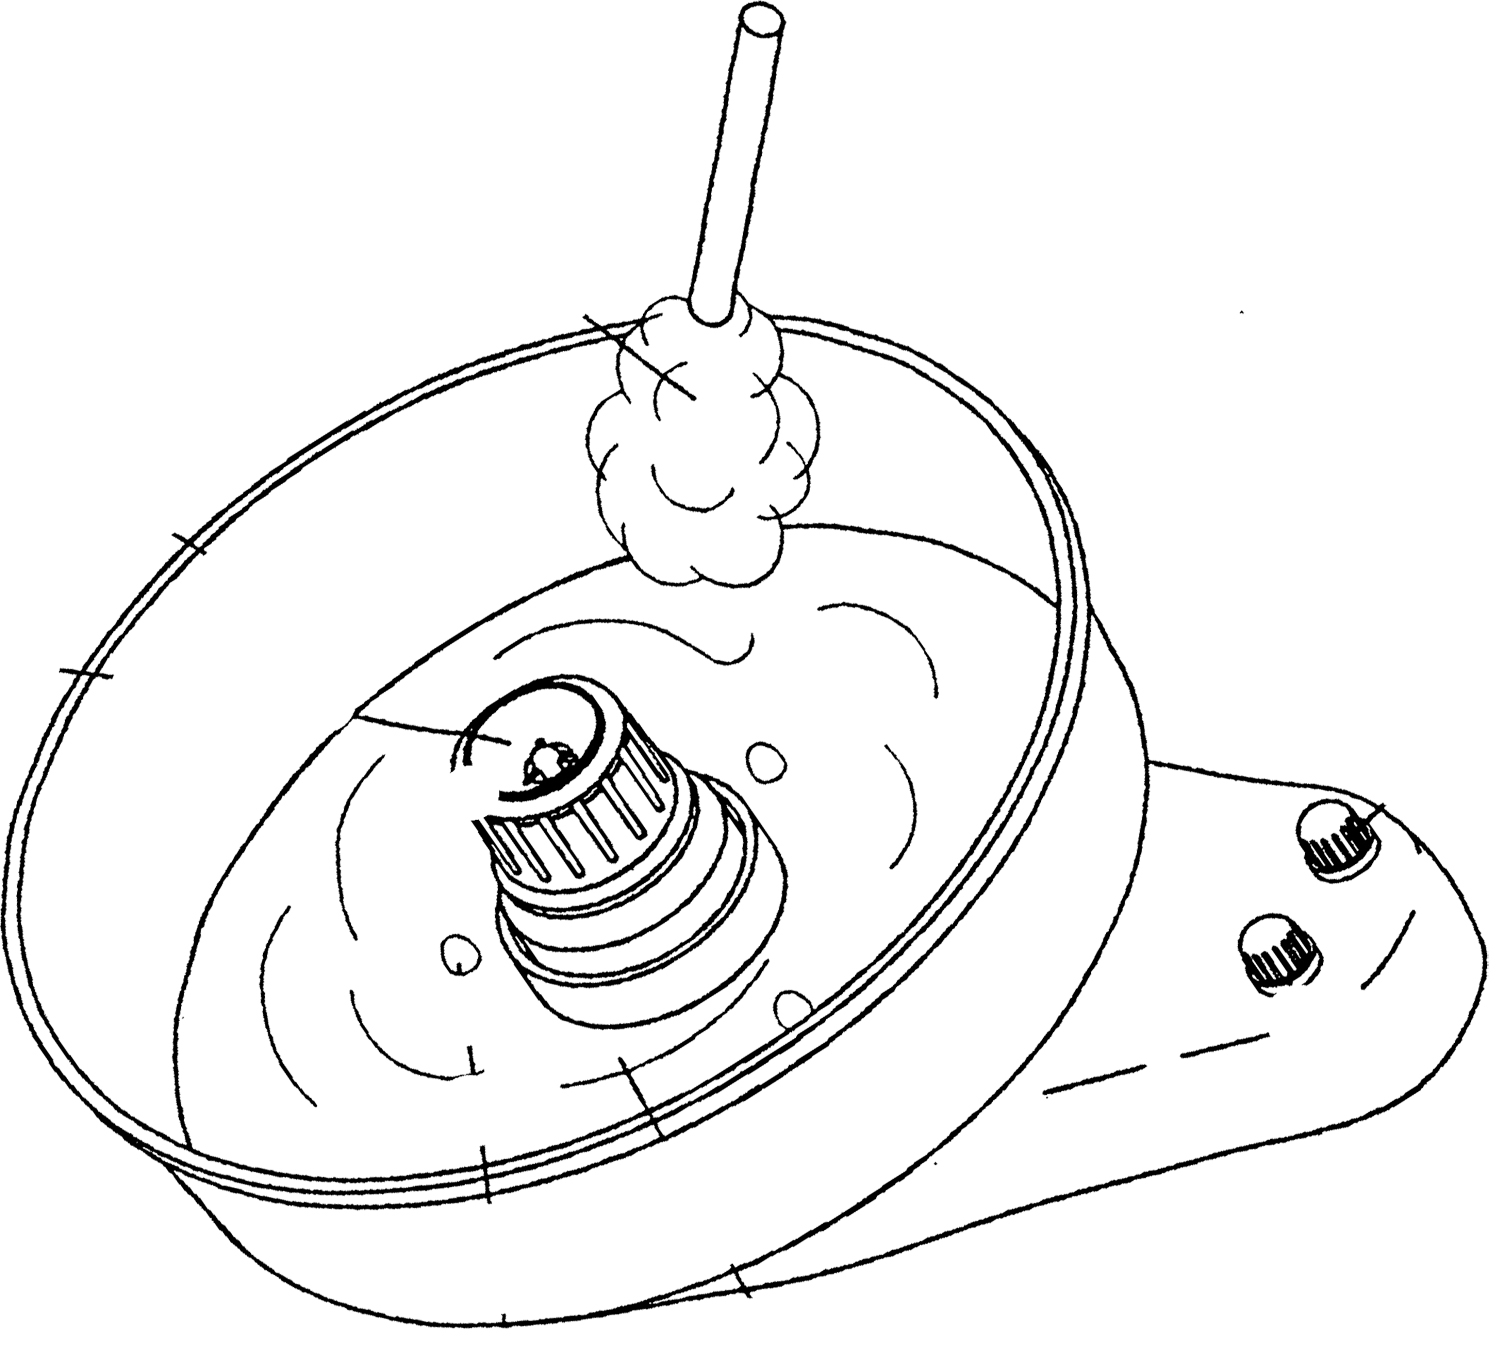 1500x1357 Cotton Coloring Pages Cotton Candy Coloring Pages